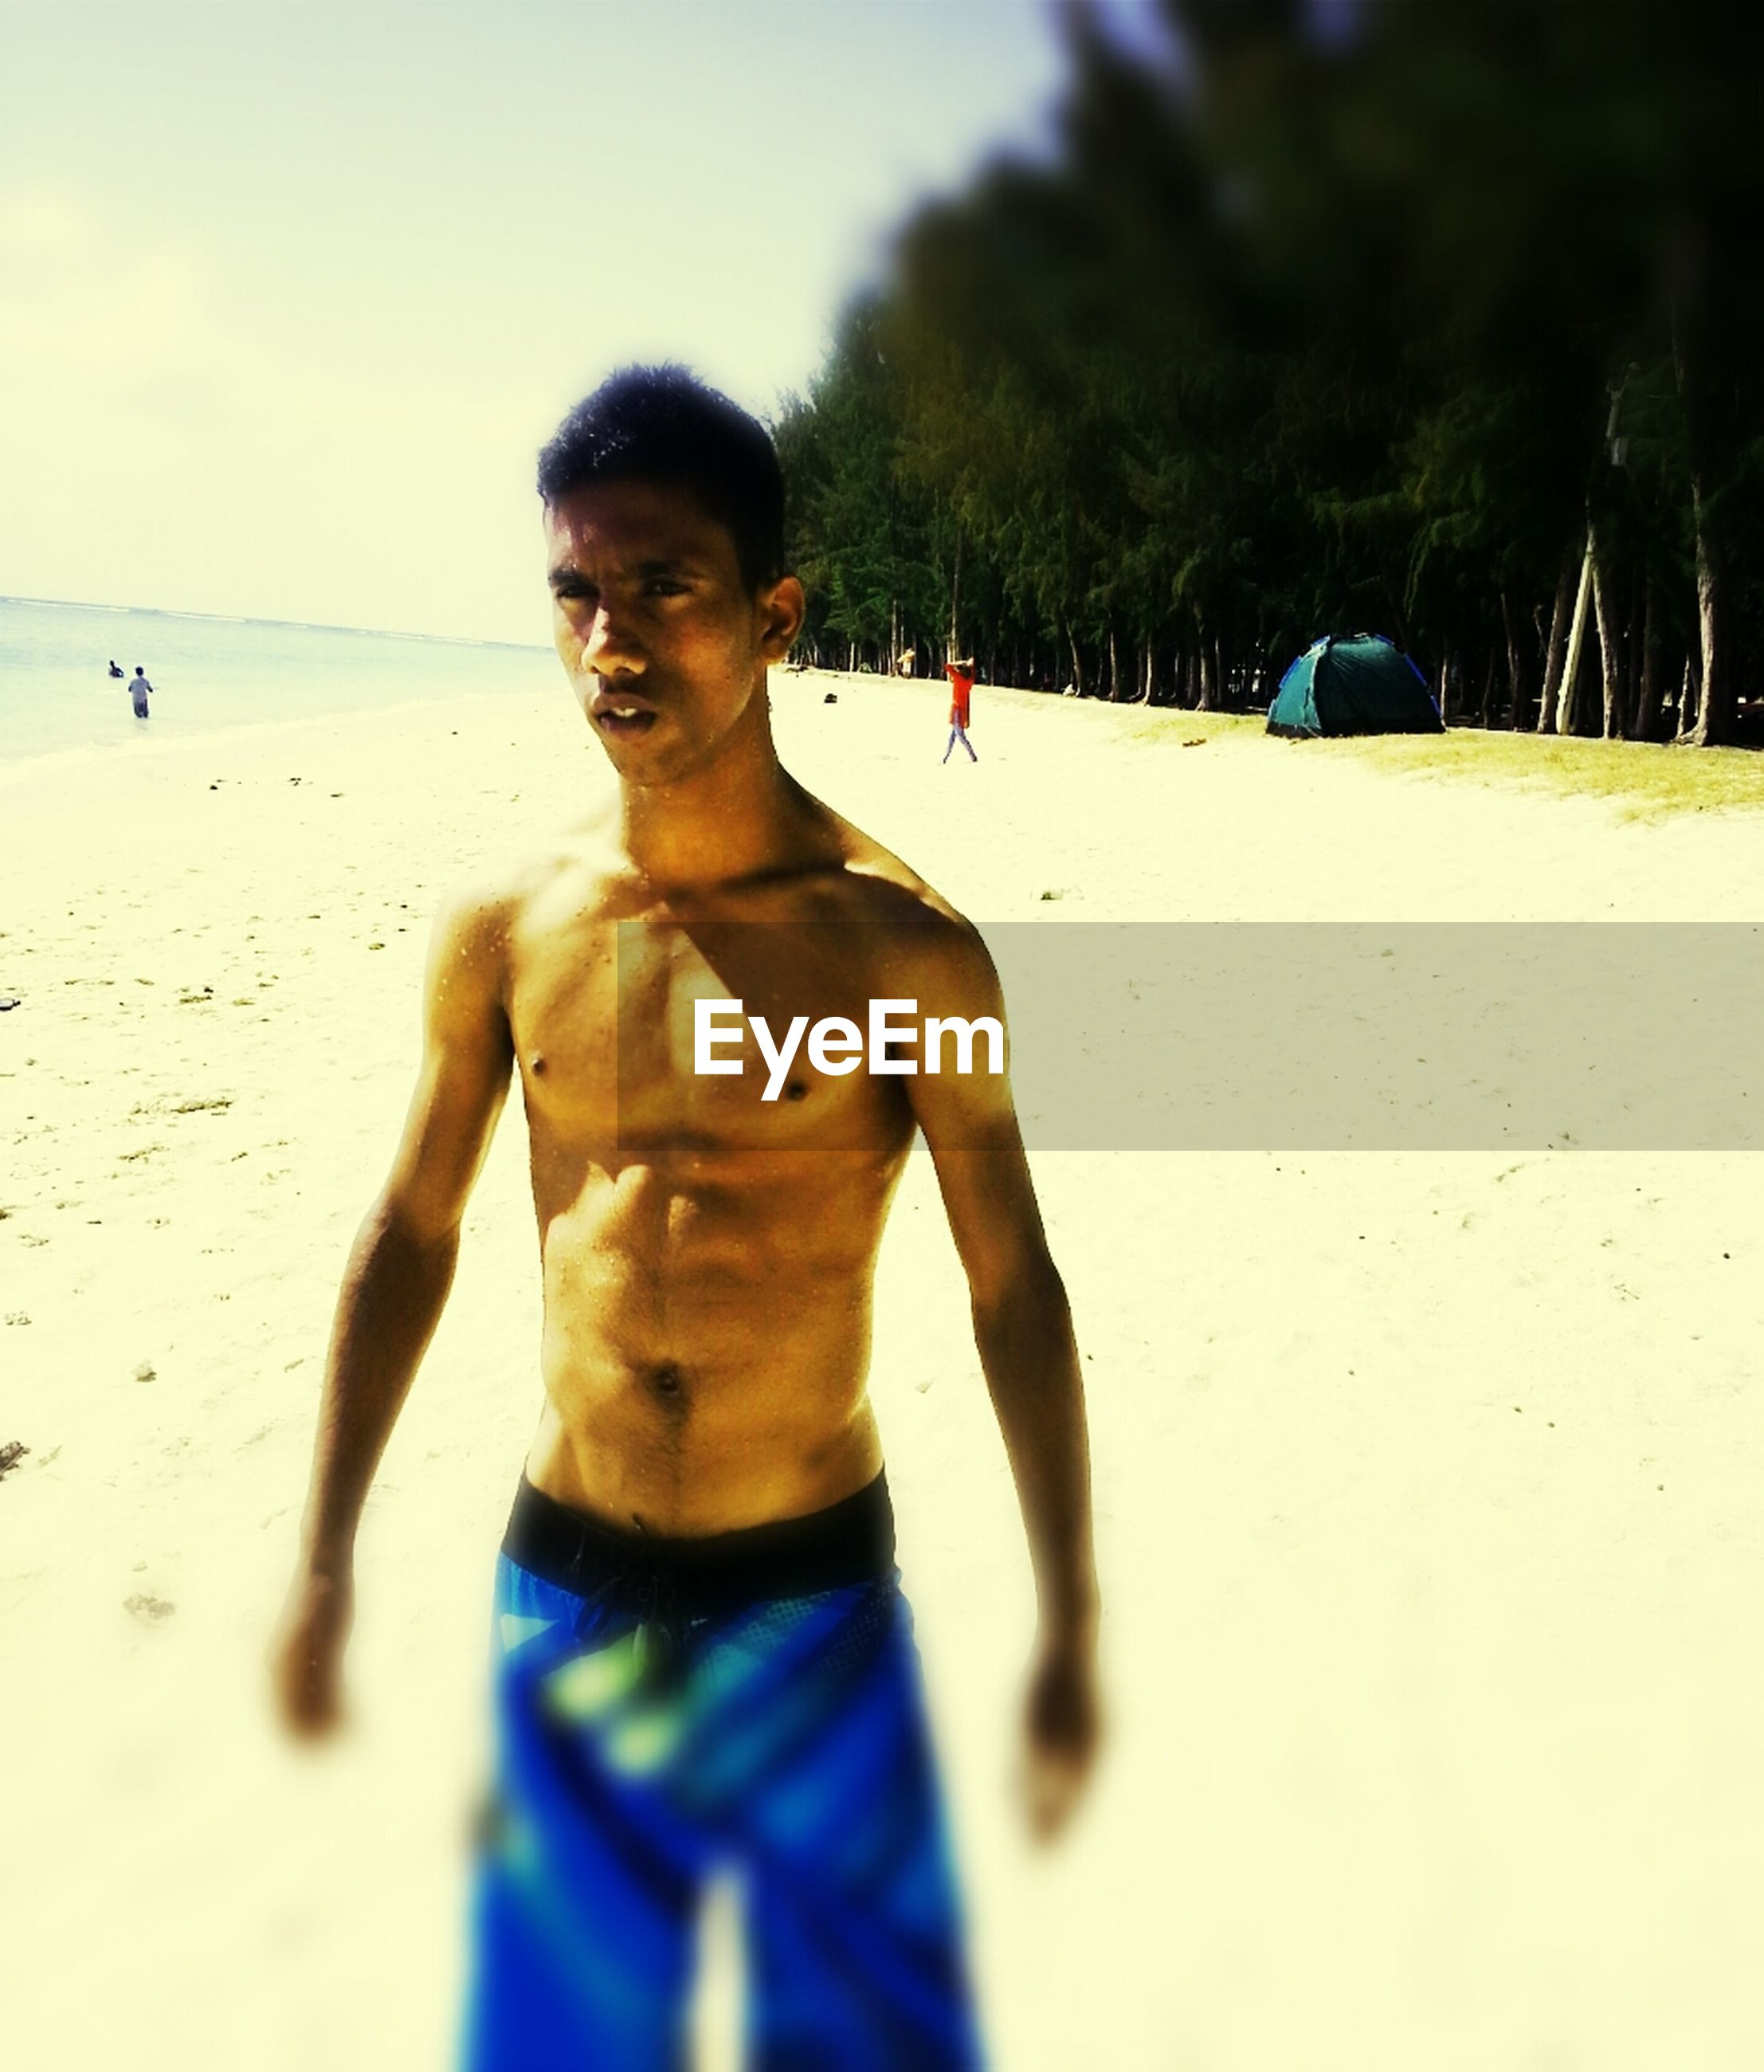 beach, sand, lifestyles, leisure activity, sea, person, shore, young adult, casual clothing, vacations, standing, horizon over water, water, looking at camera, young men, sky, front view, happiness